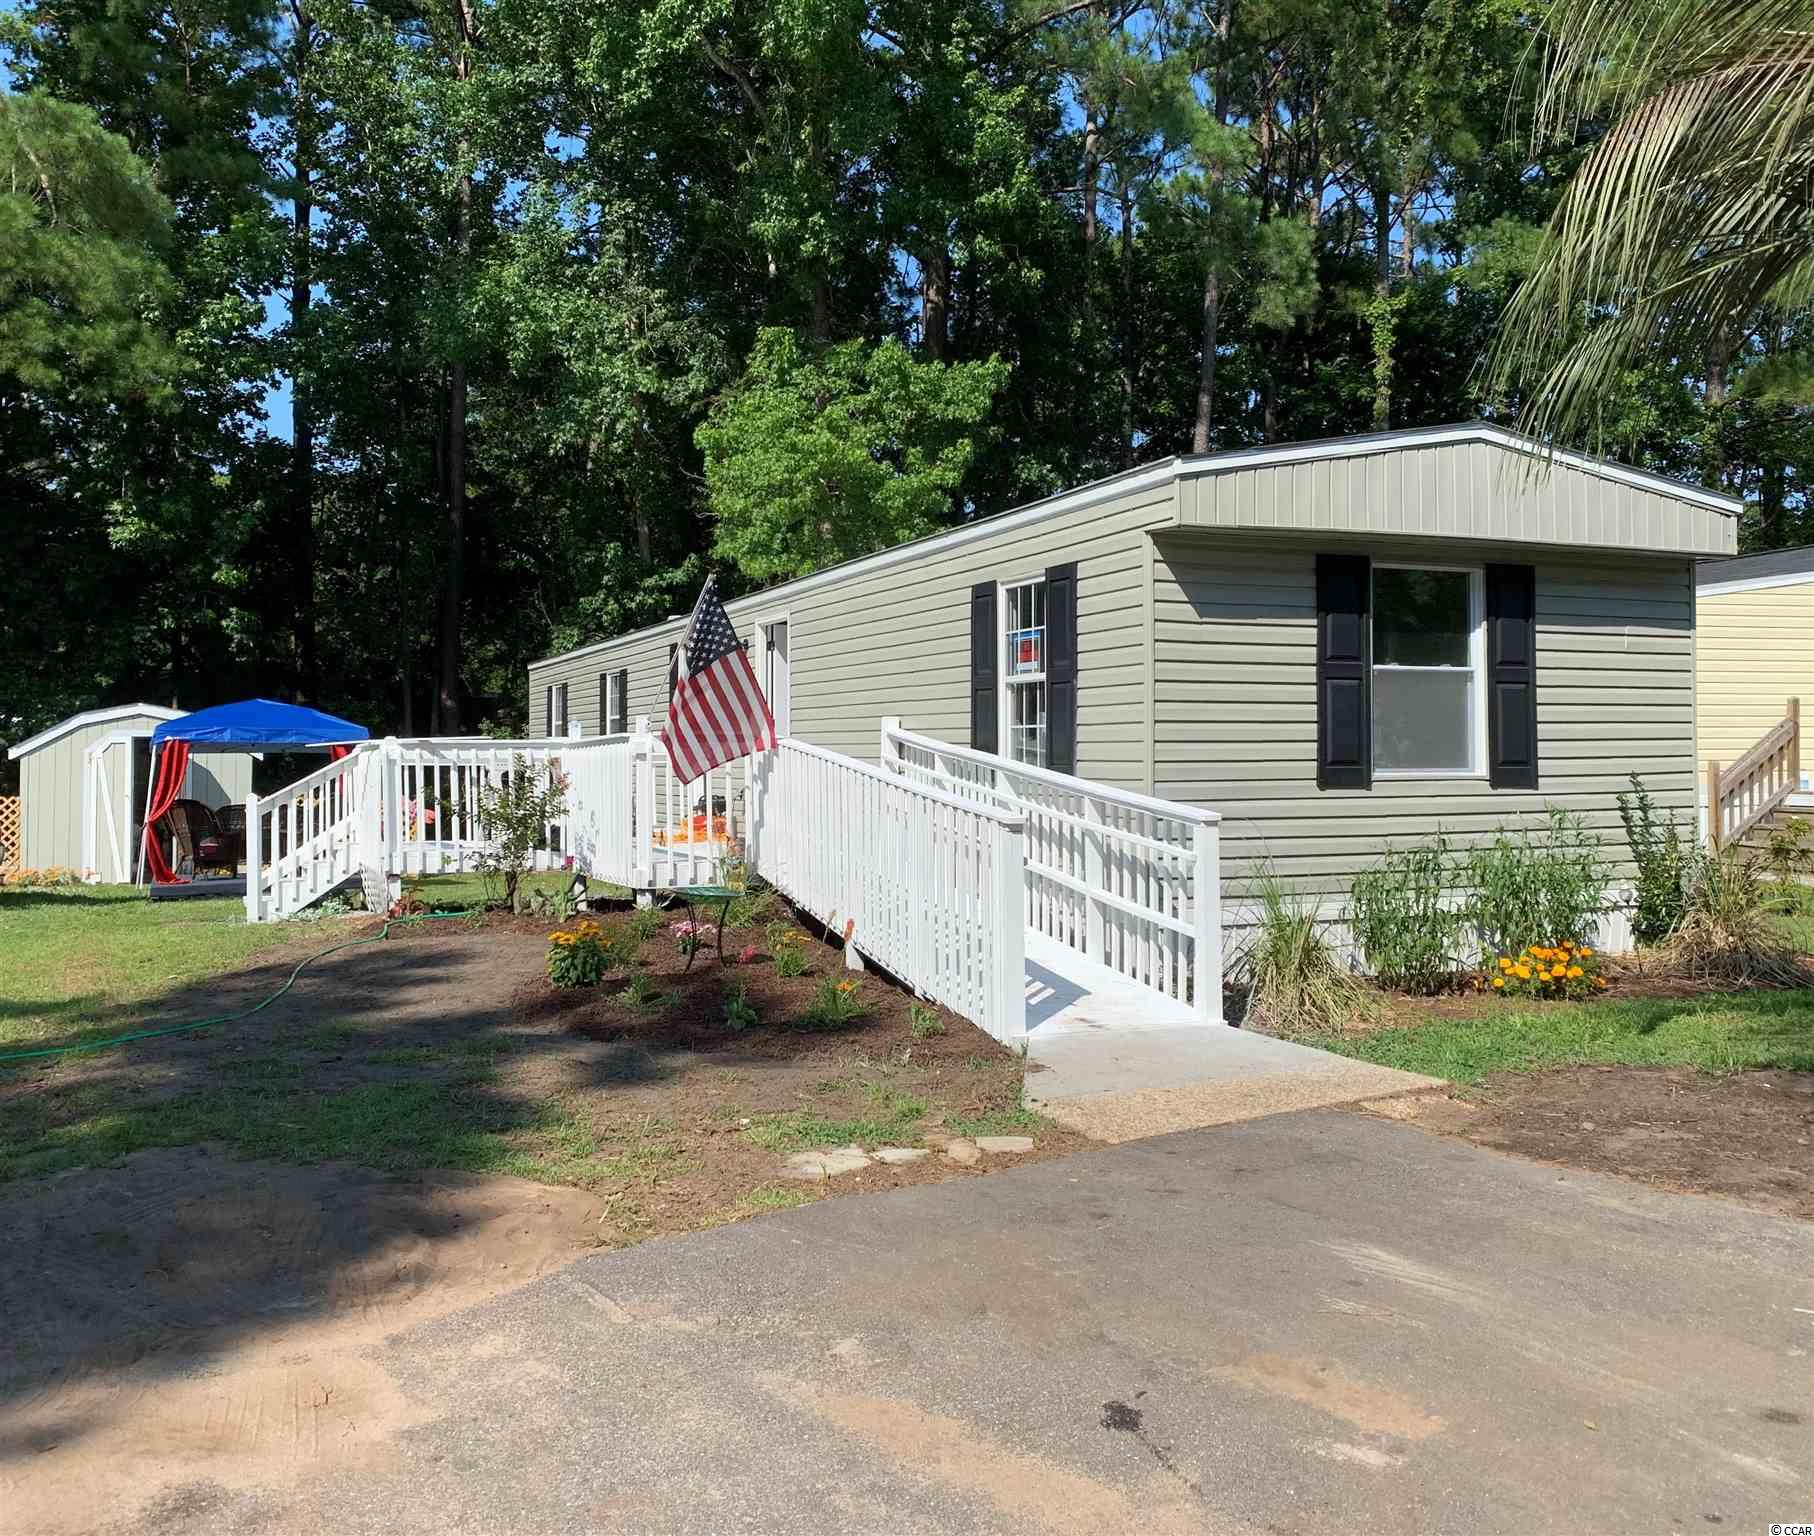 Fully Renovated & Great Location!!! Move-in-Ready Manufactured Home Less than a Mile from the Beach!!! This mobile home sits in the very popular and golf-cart friendly Windjammer Village section of Murrells Inlet/Garden City. Brand new luxury vinyl flooring, stunning shiplap ceilings and new drywall throughout, both bathrooms renovated, new shower/tub surrounds and toilets. Stainless Steel kitchen appliances. Windows, washer/dryer, siding and doors replaced. Ramp, porch area painted and new plantings. Two HVAC digital split-units barely used (2019) & work great! New Kitchen and bathroom layouts. Tons of storage inside and out in the large shed which conveys with sale. Golf cart and boats are both acceptable in this community. Neutral paint and wainscoting complete this transformation. Shopping, great restaurants and medical all nearby. Be at the heart of everything in your own perfect beach bungalow. All measurements are approximate and must be verified by buyer prior to closing. Book your showing today!!!